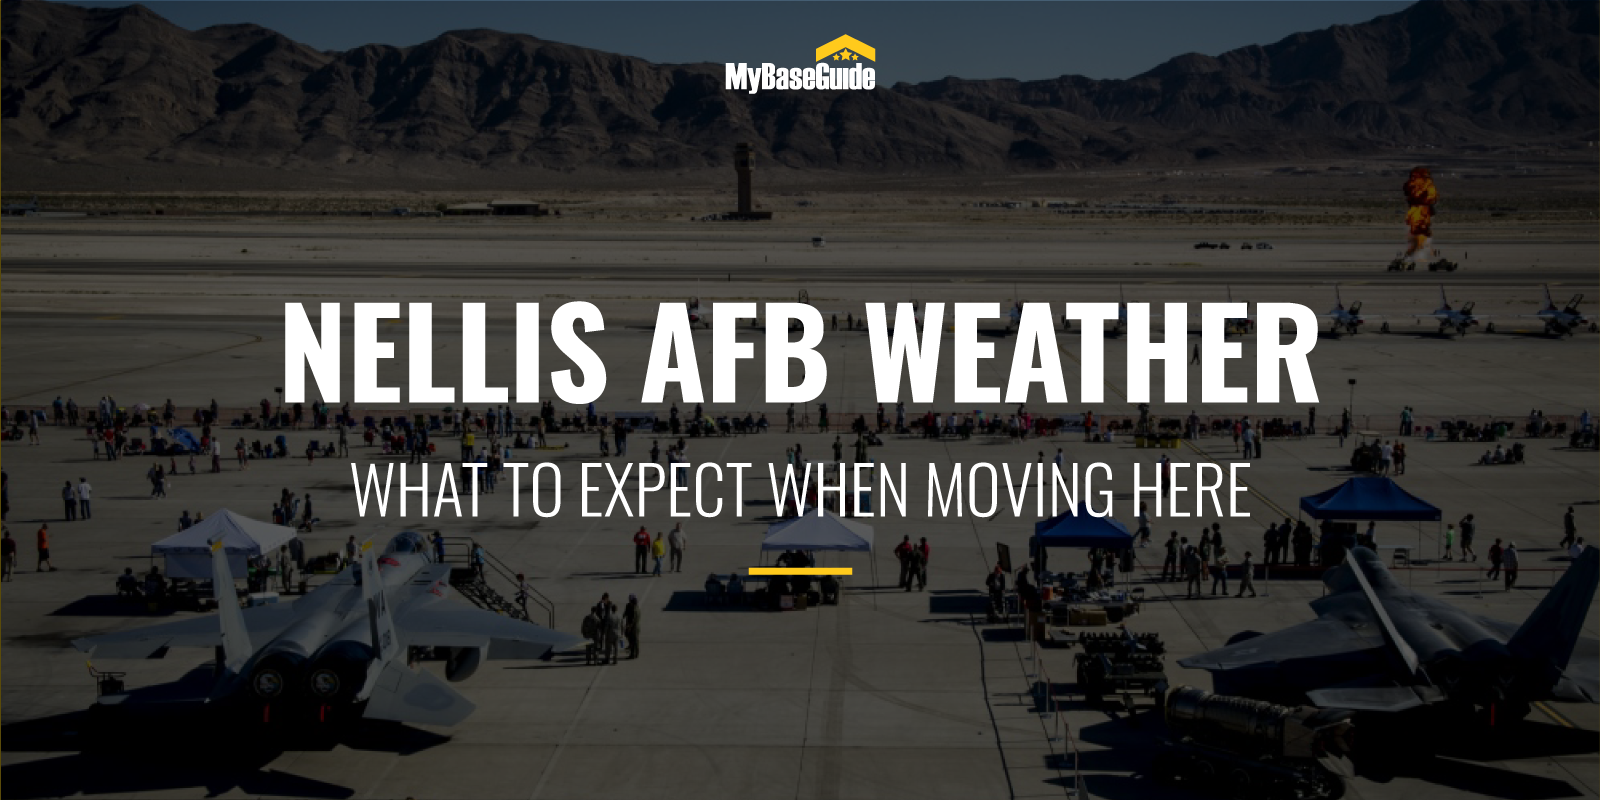 Nellis AFB Weather: What To Expect When Moving Here